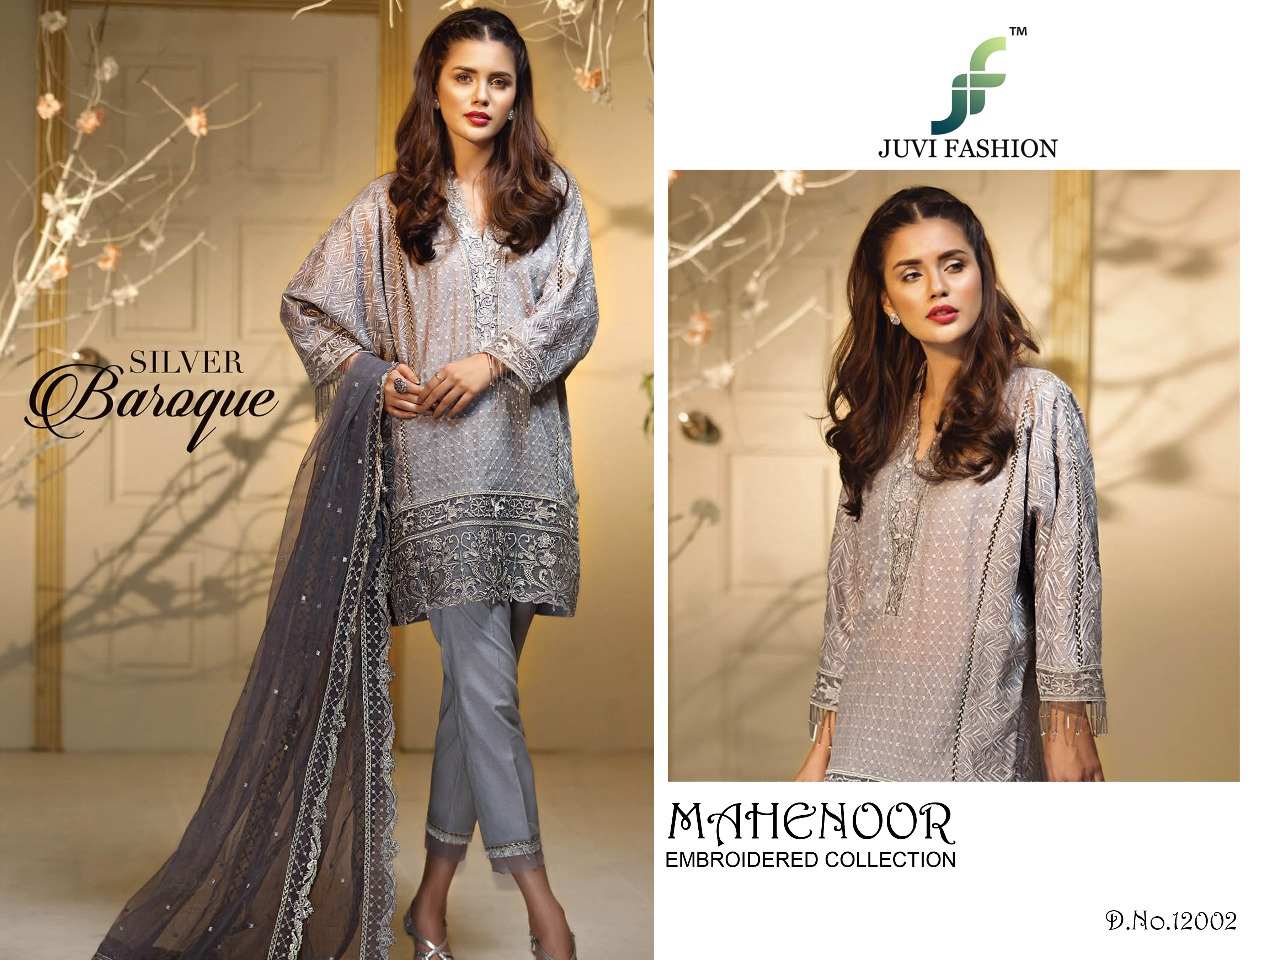 Juvi Fashion Mahenoor Embroidered Collection 12002